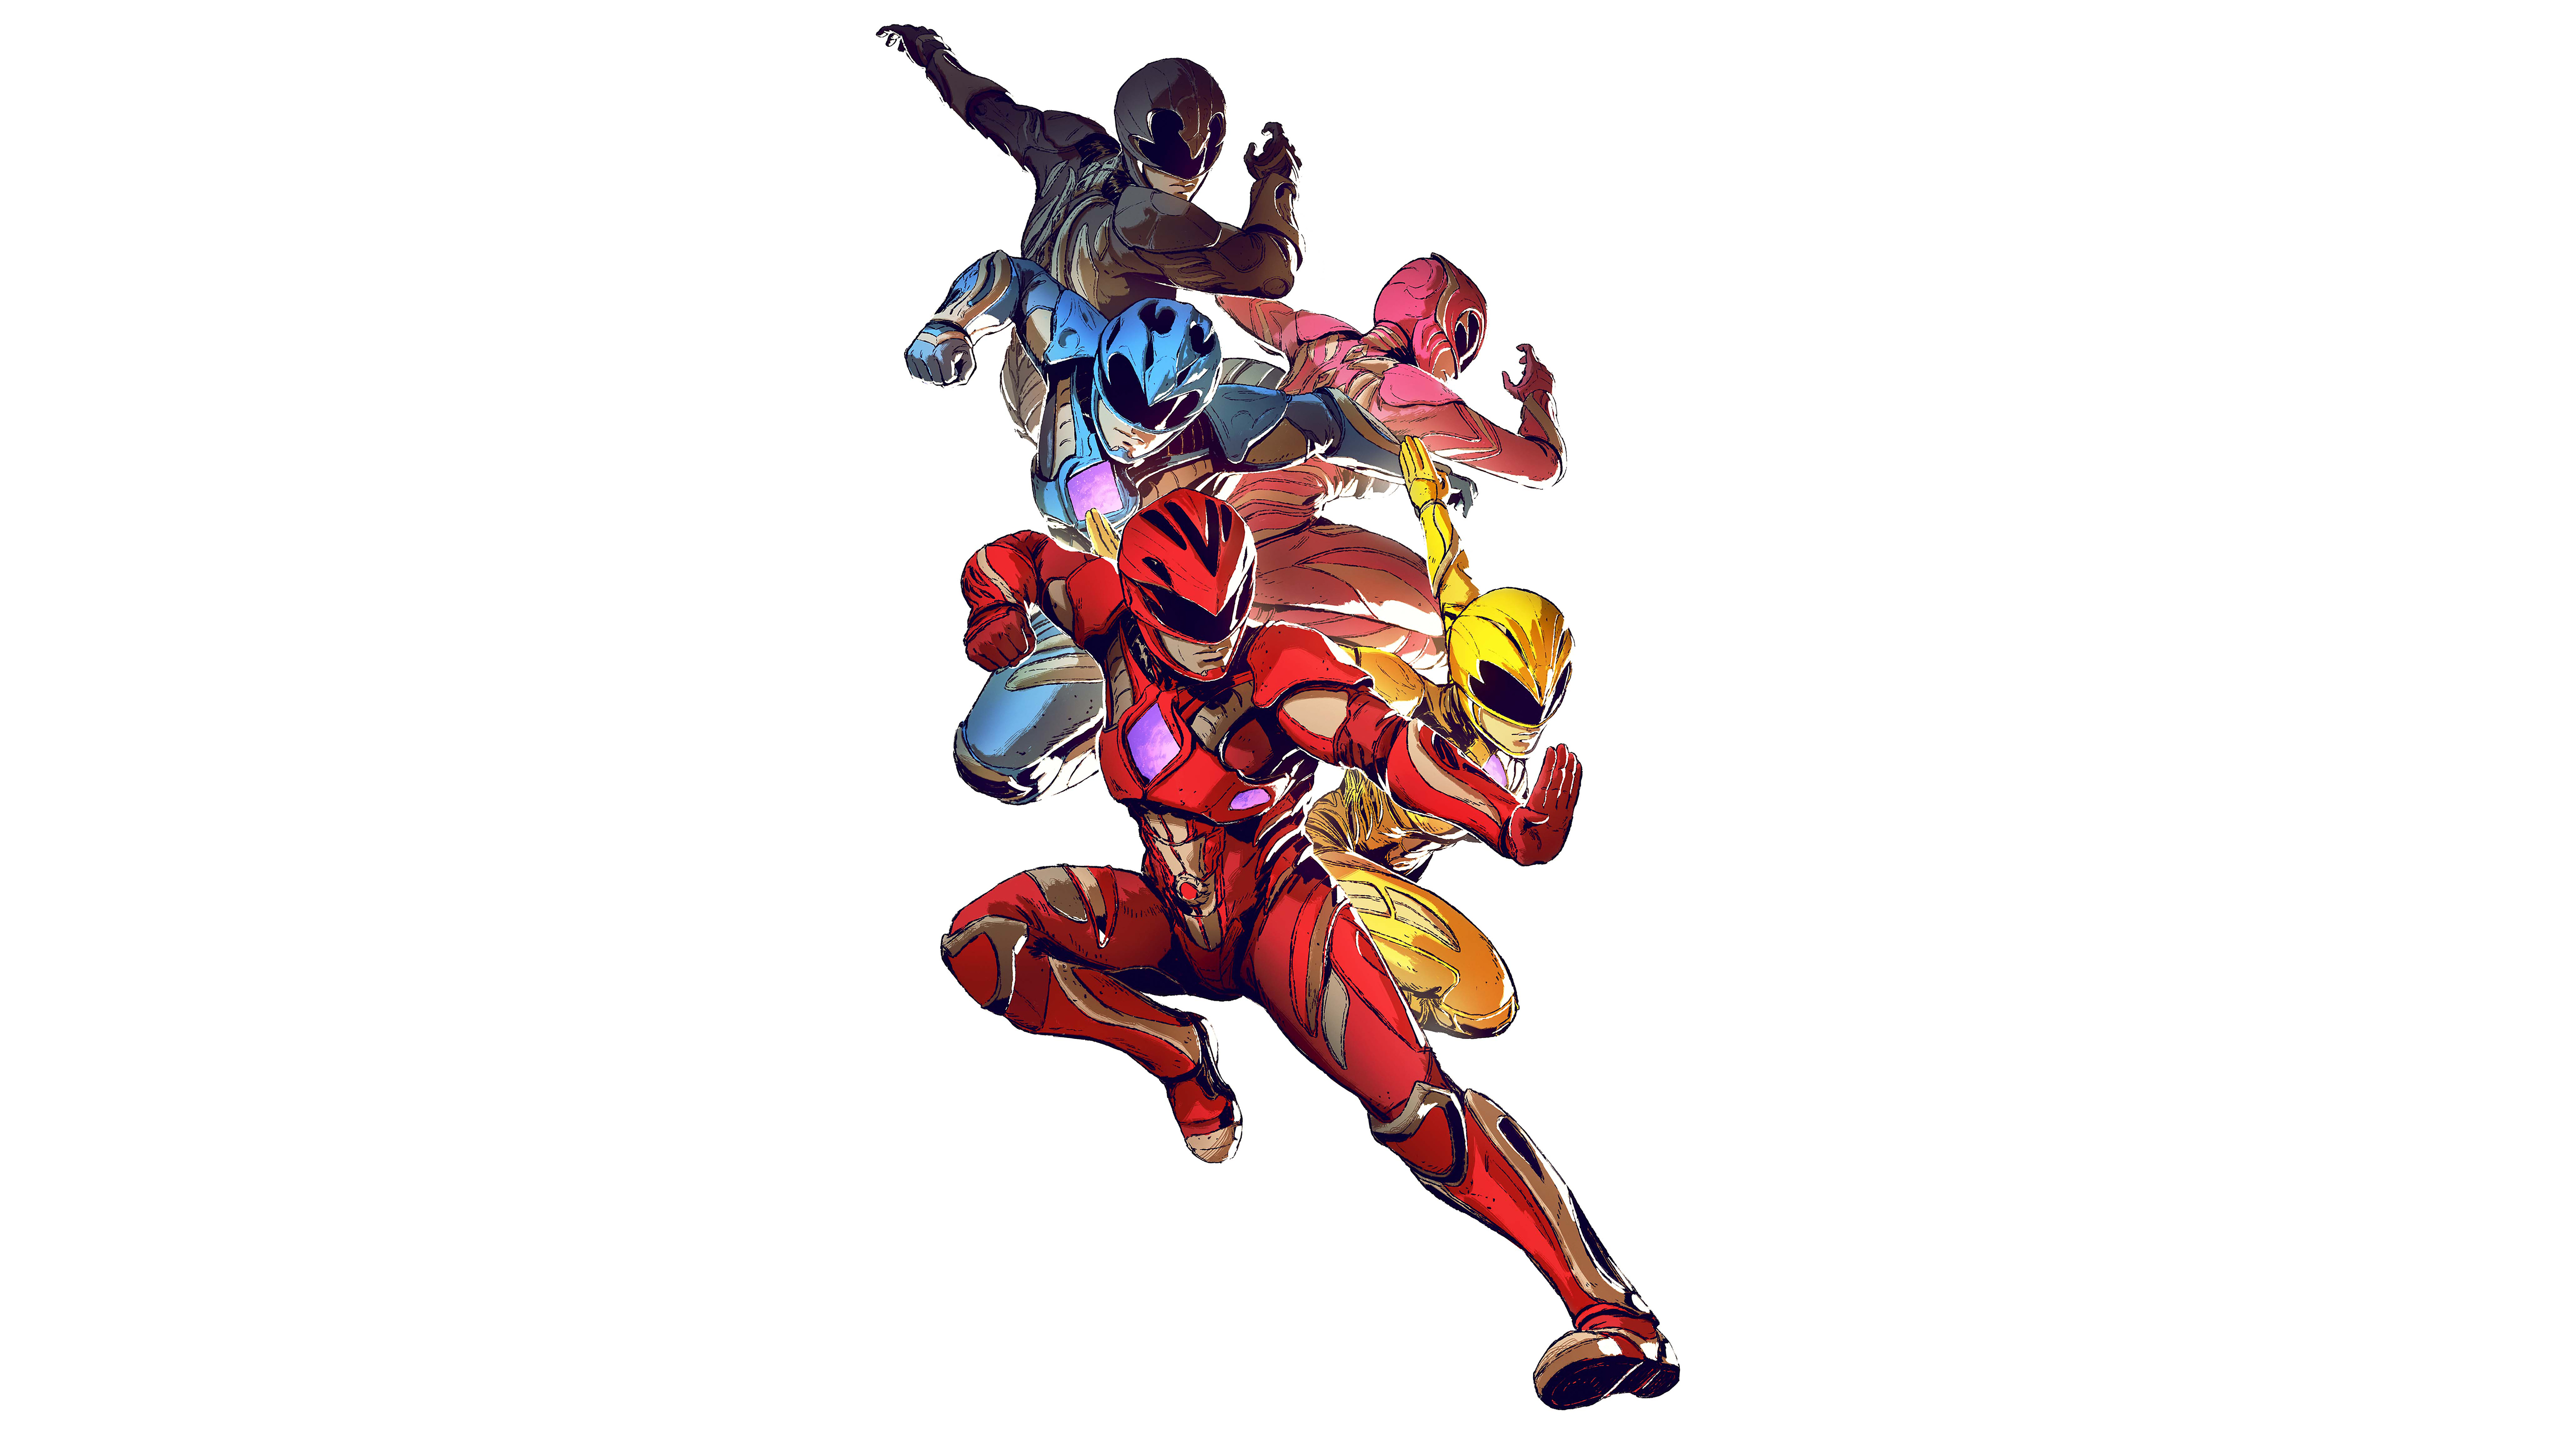 Power Rangers (2017) Wallpapers, Pictures, Images